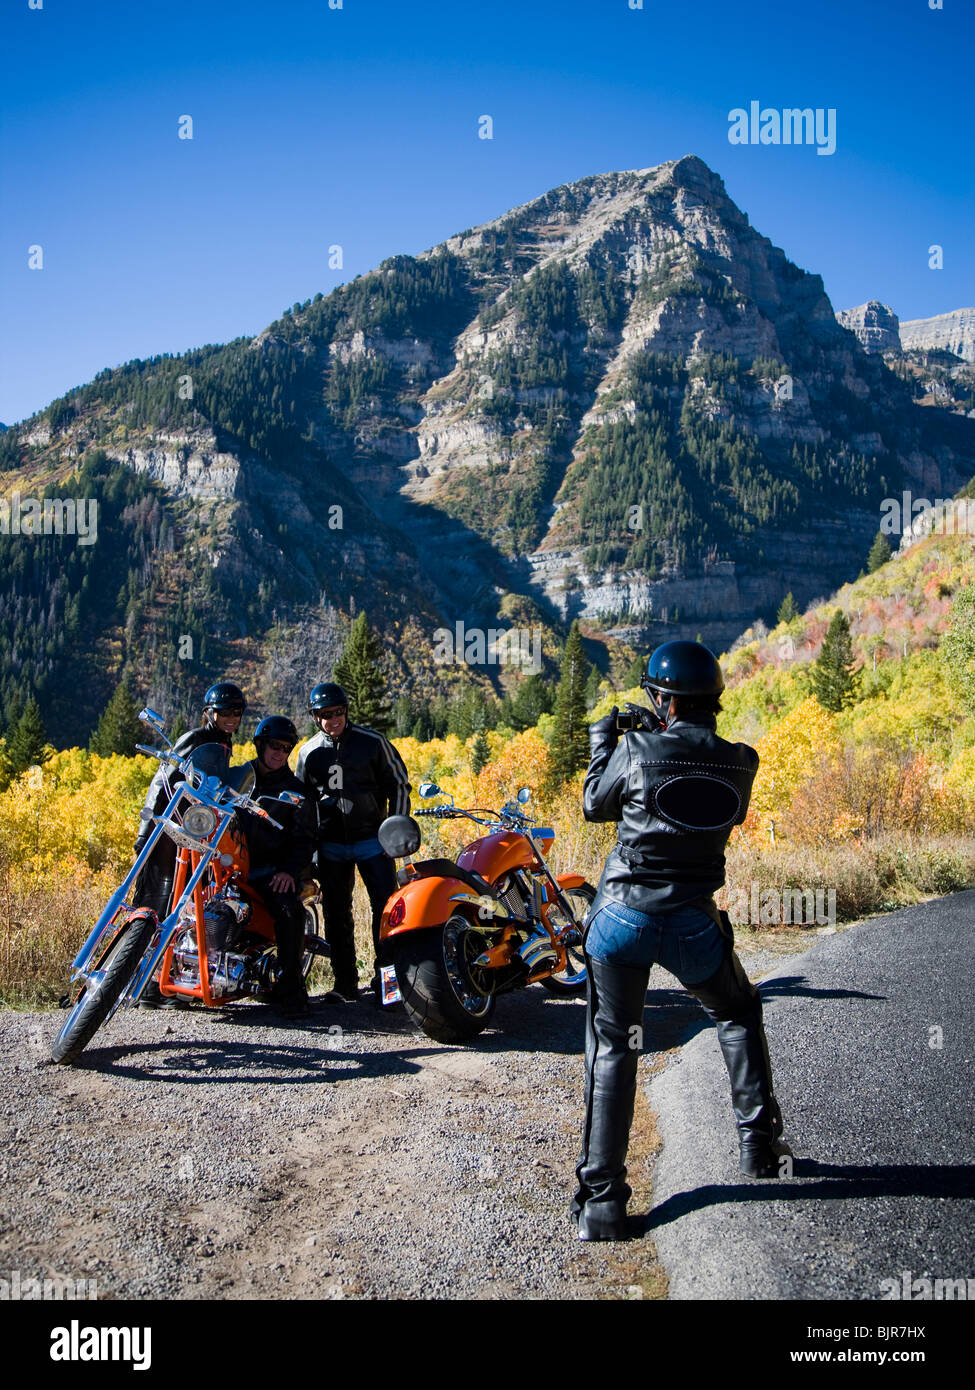 bikers taking a photo on the side of the road - Stock Image